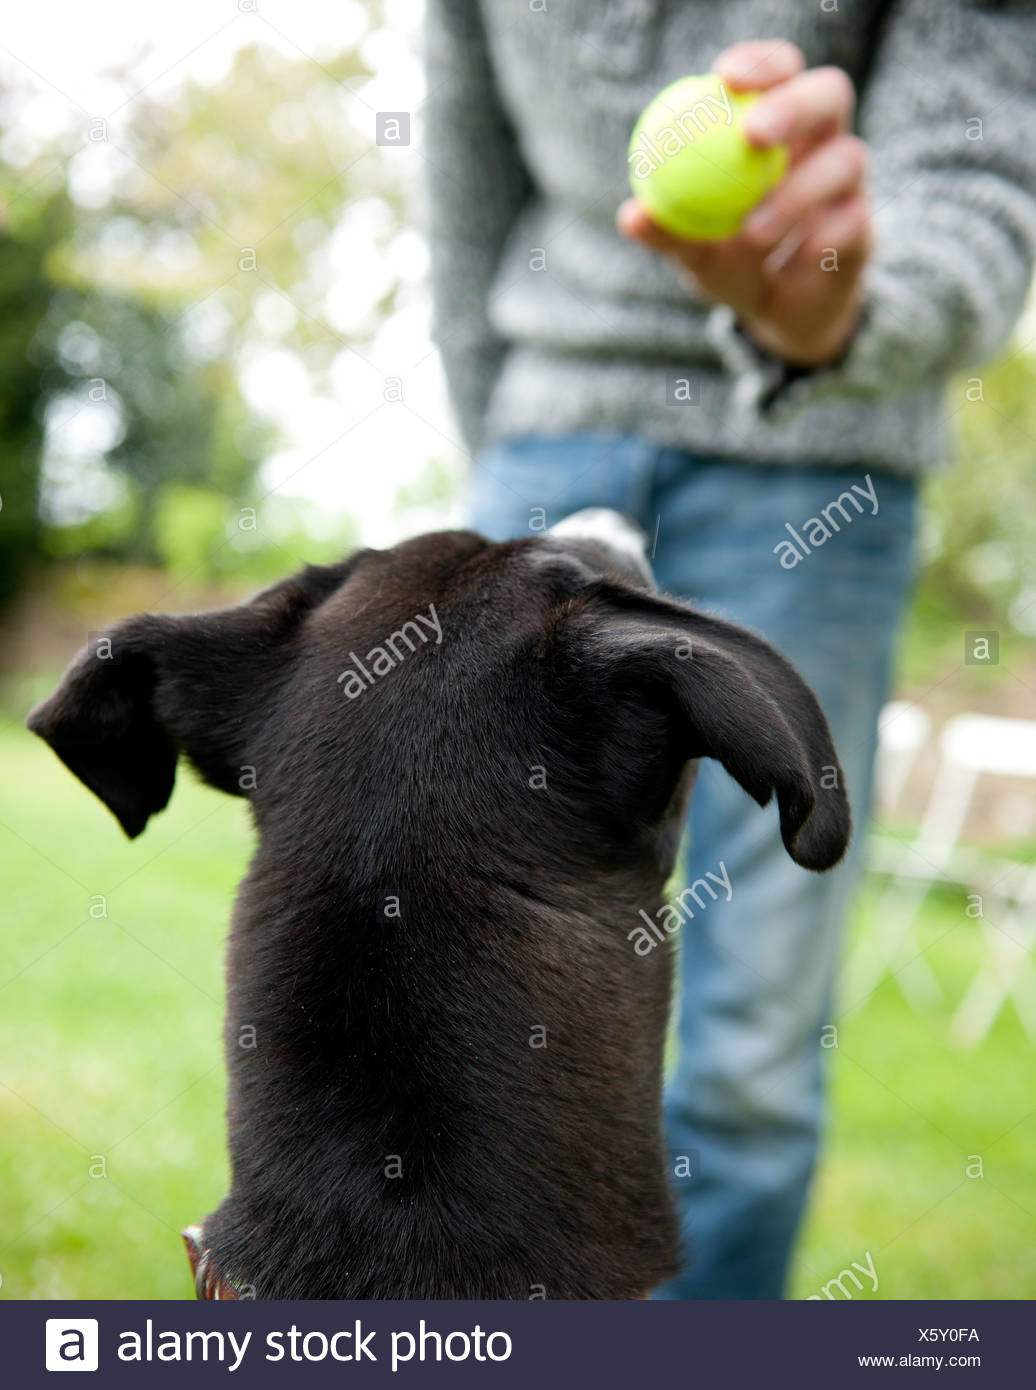 rear vieew of black dog waiting for ball to be thrown - Stock Image